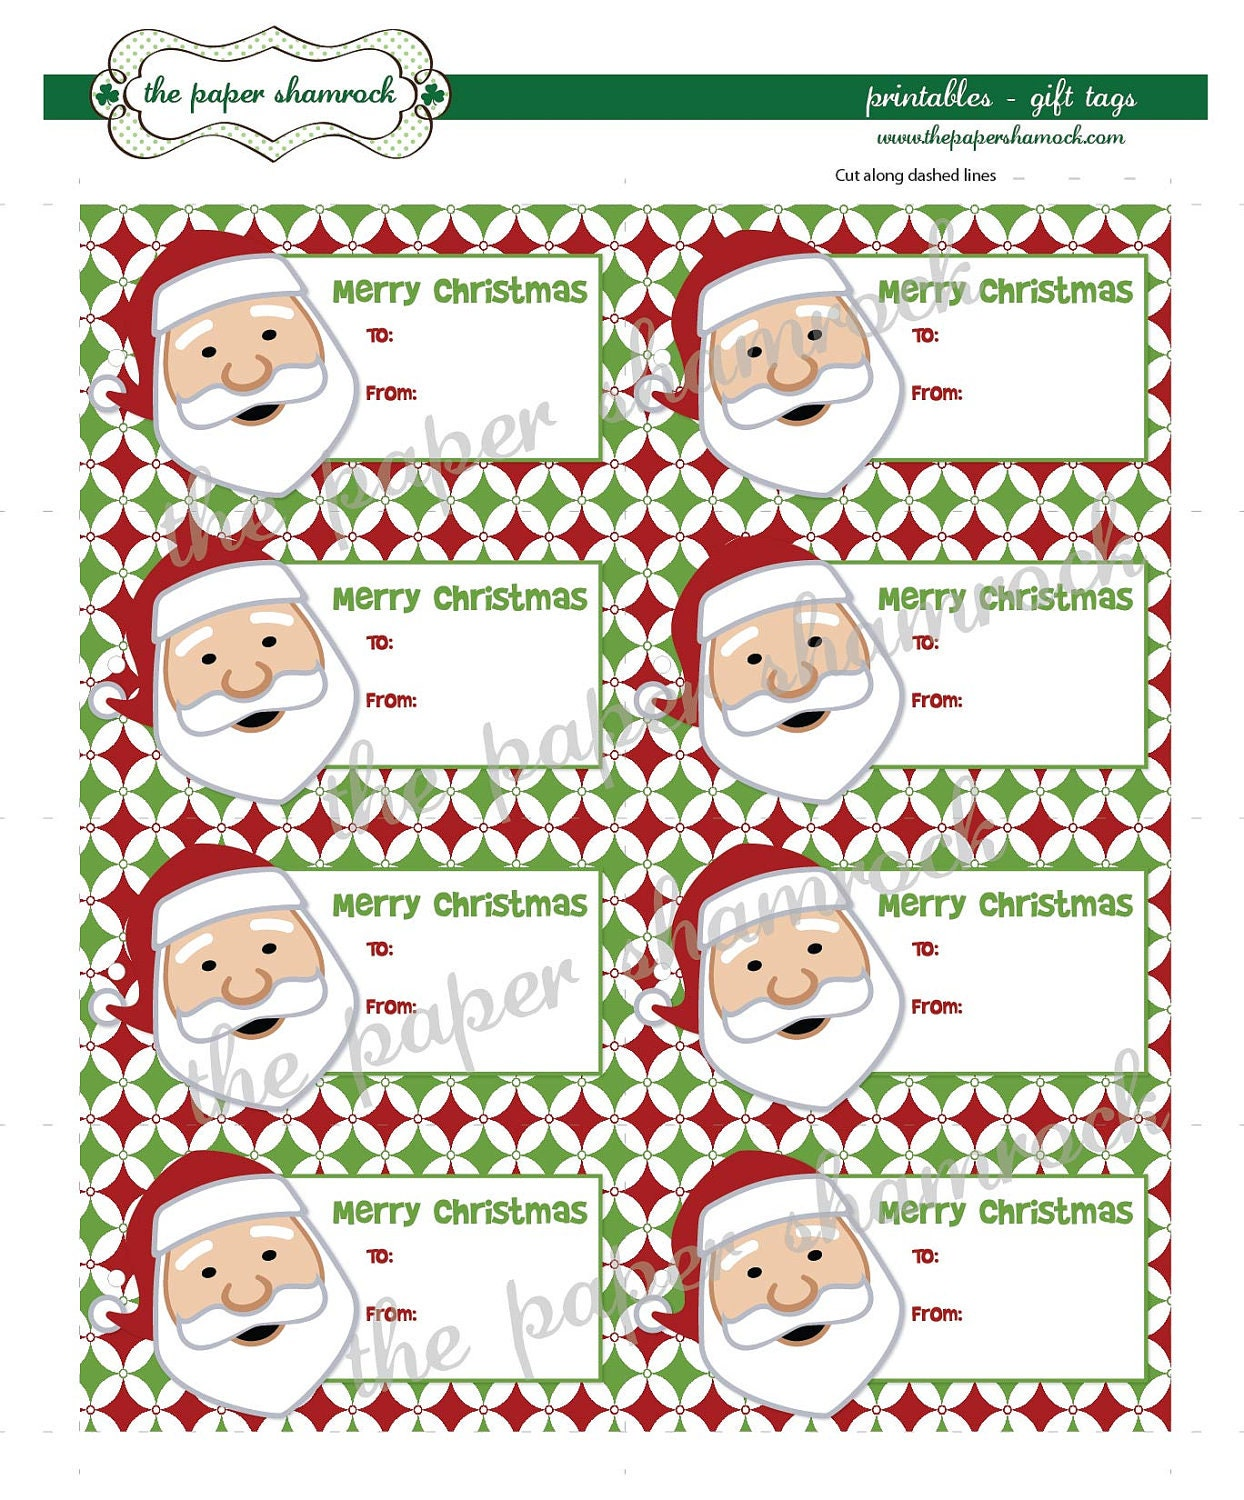 This is a photo of Bewitching Free Printable Editable Christmas Gift Tags